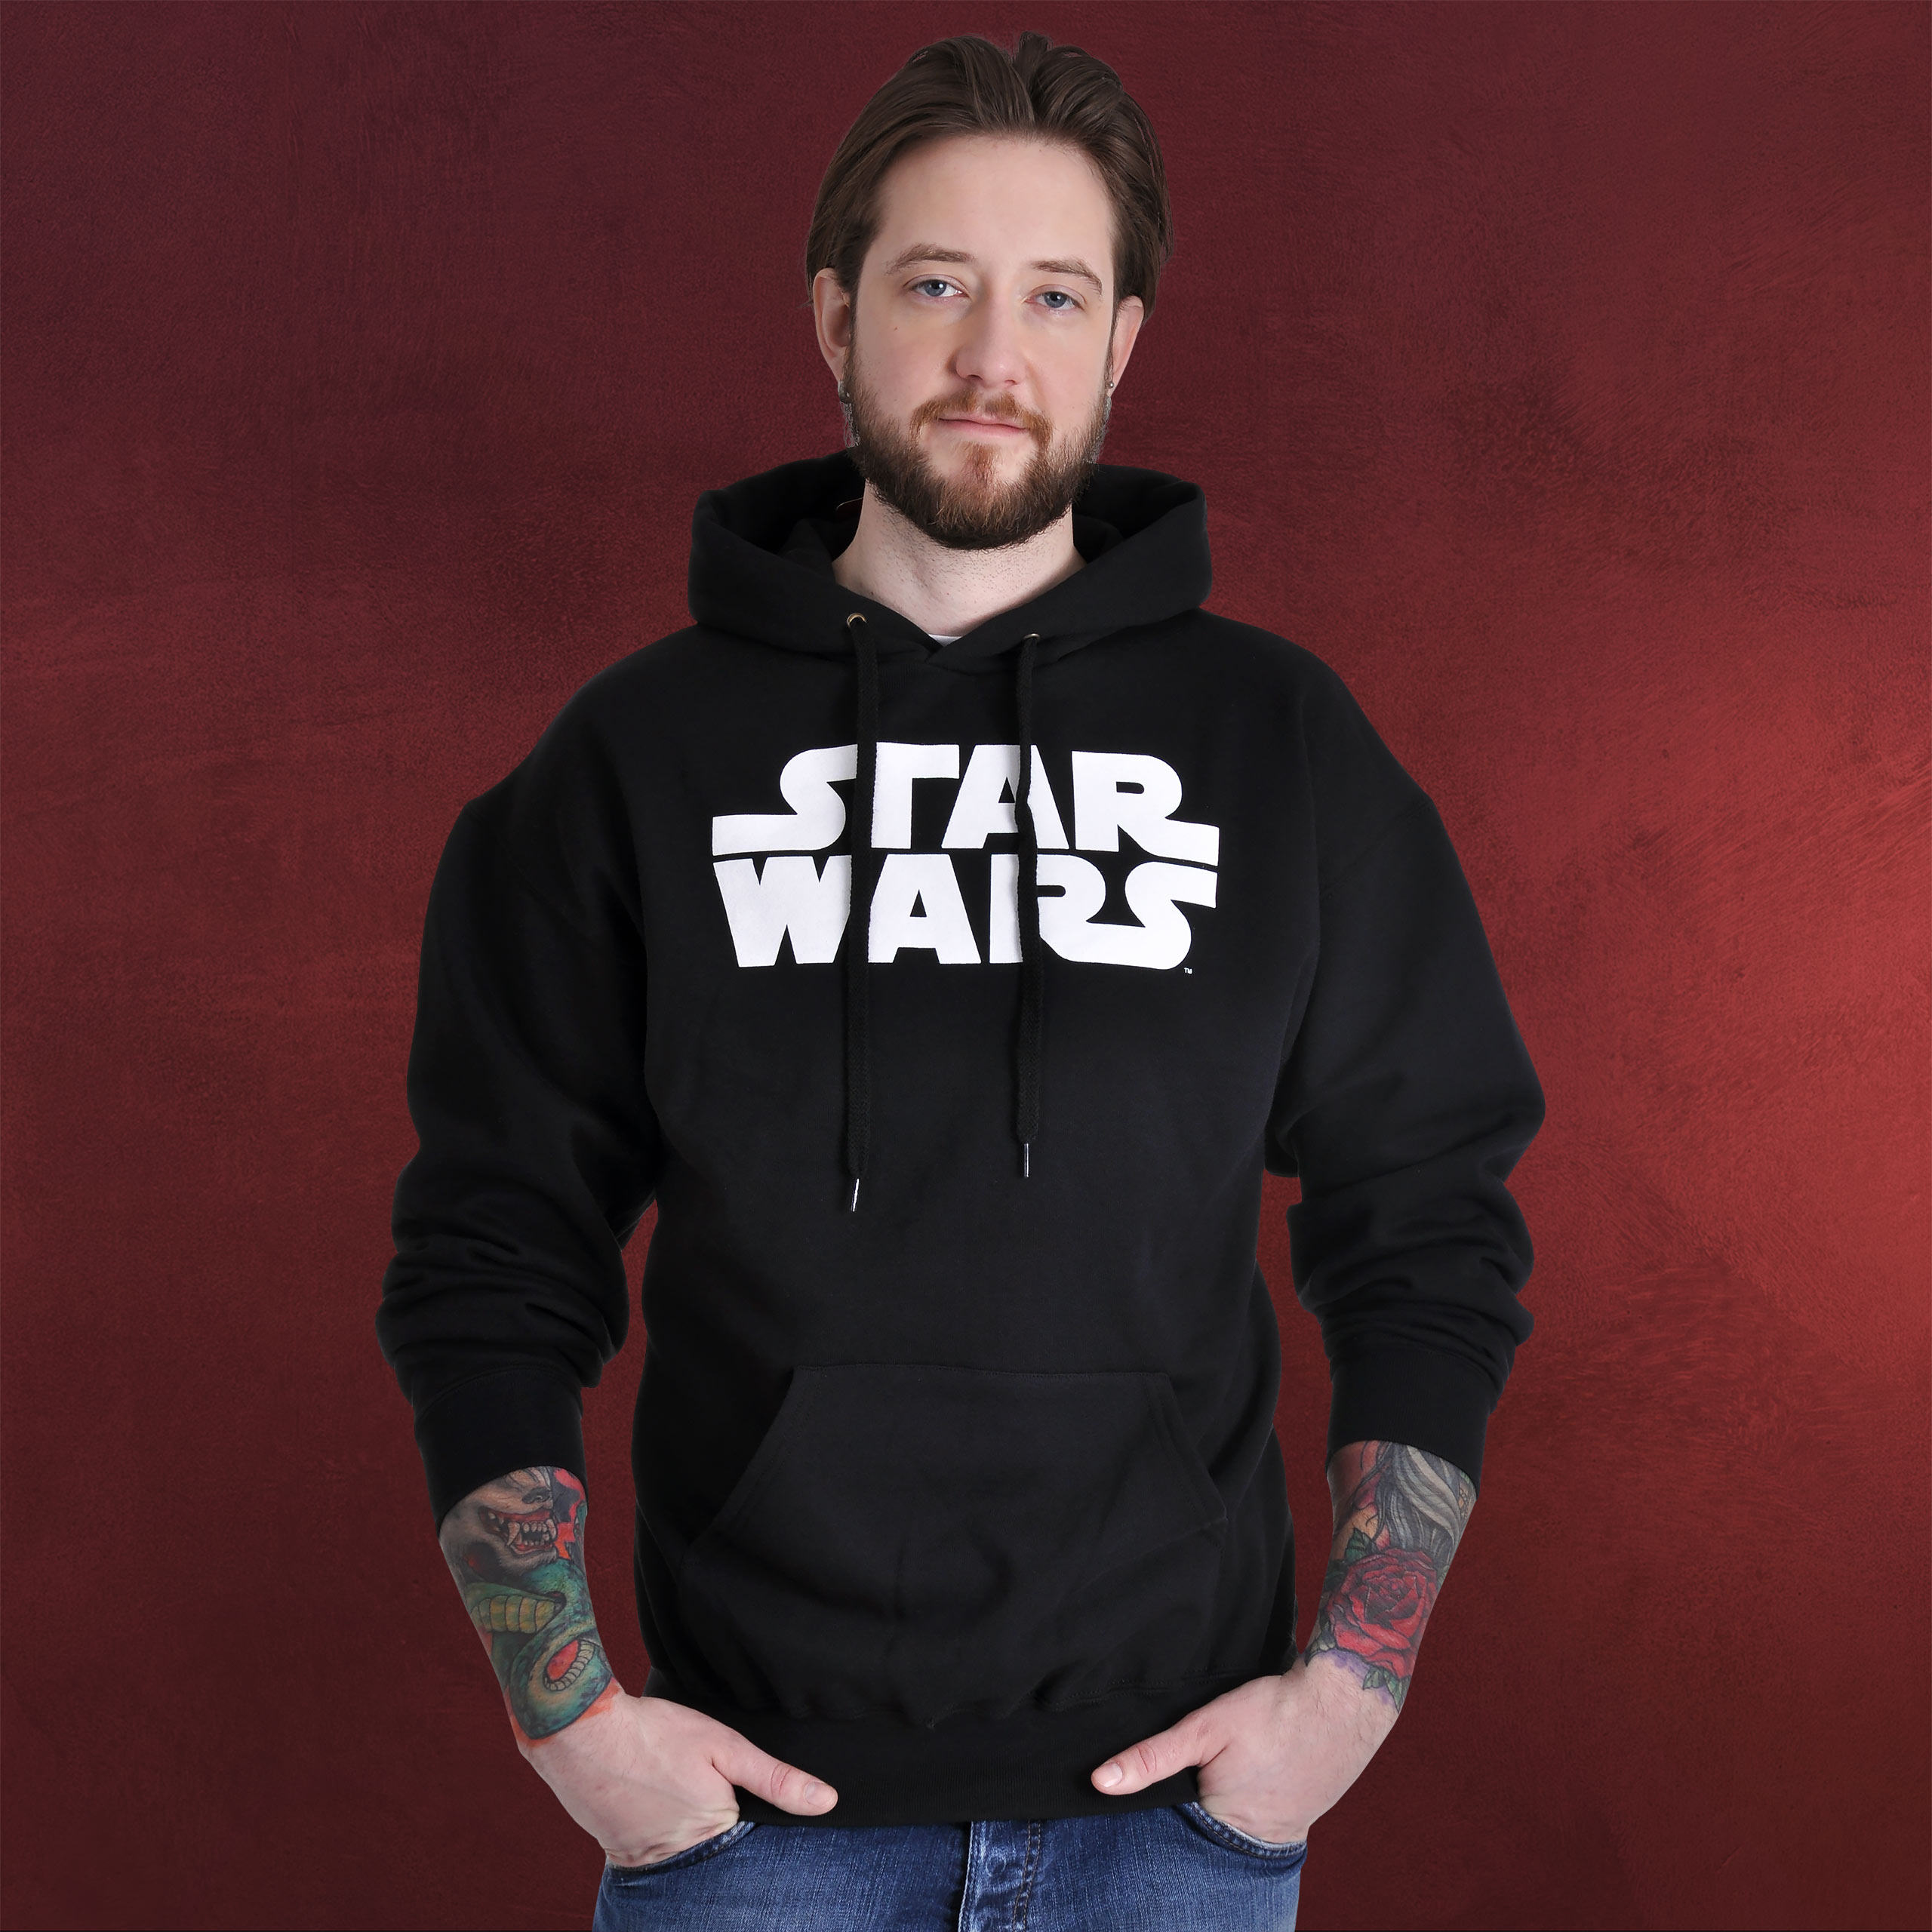 star wars hoodie darth vader stormtrooper. Black Bedroom Furniture Sets. Home Design Ideas